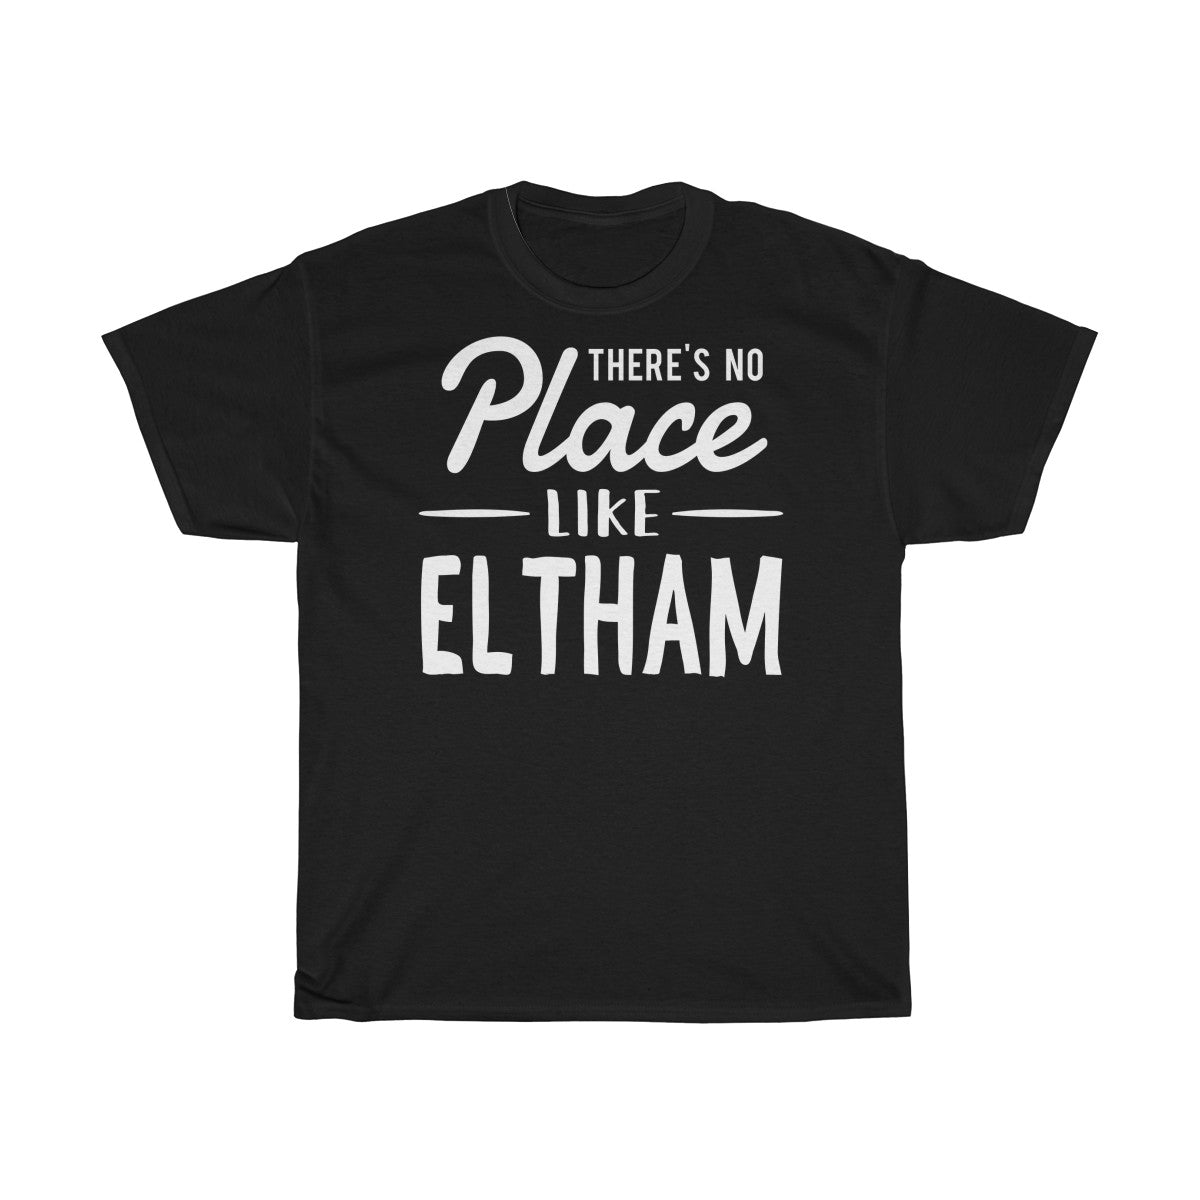 There's No Place Like Eltham Unisex T-Shirt